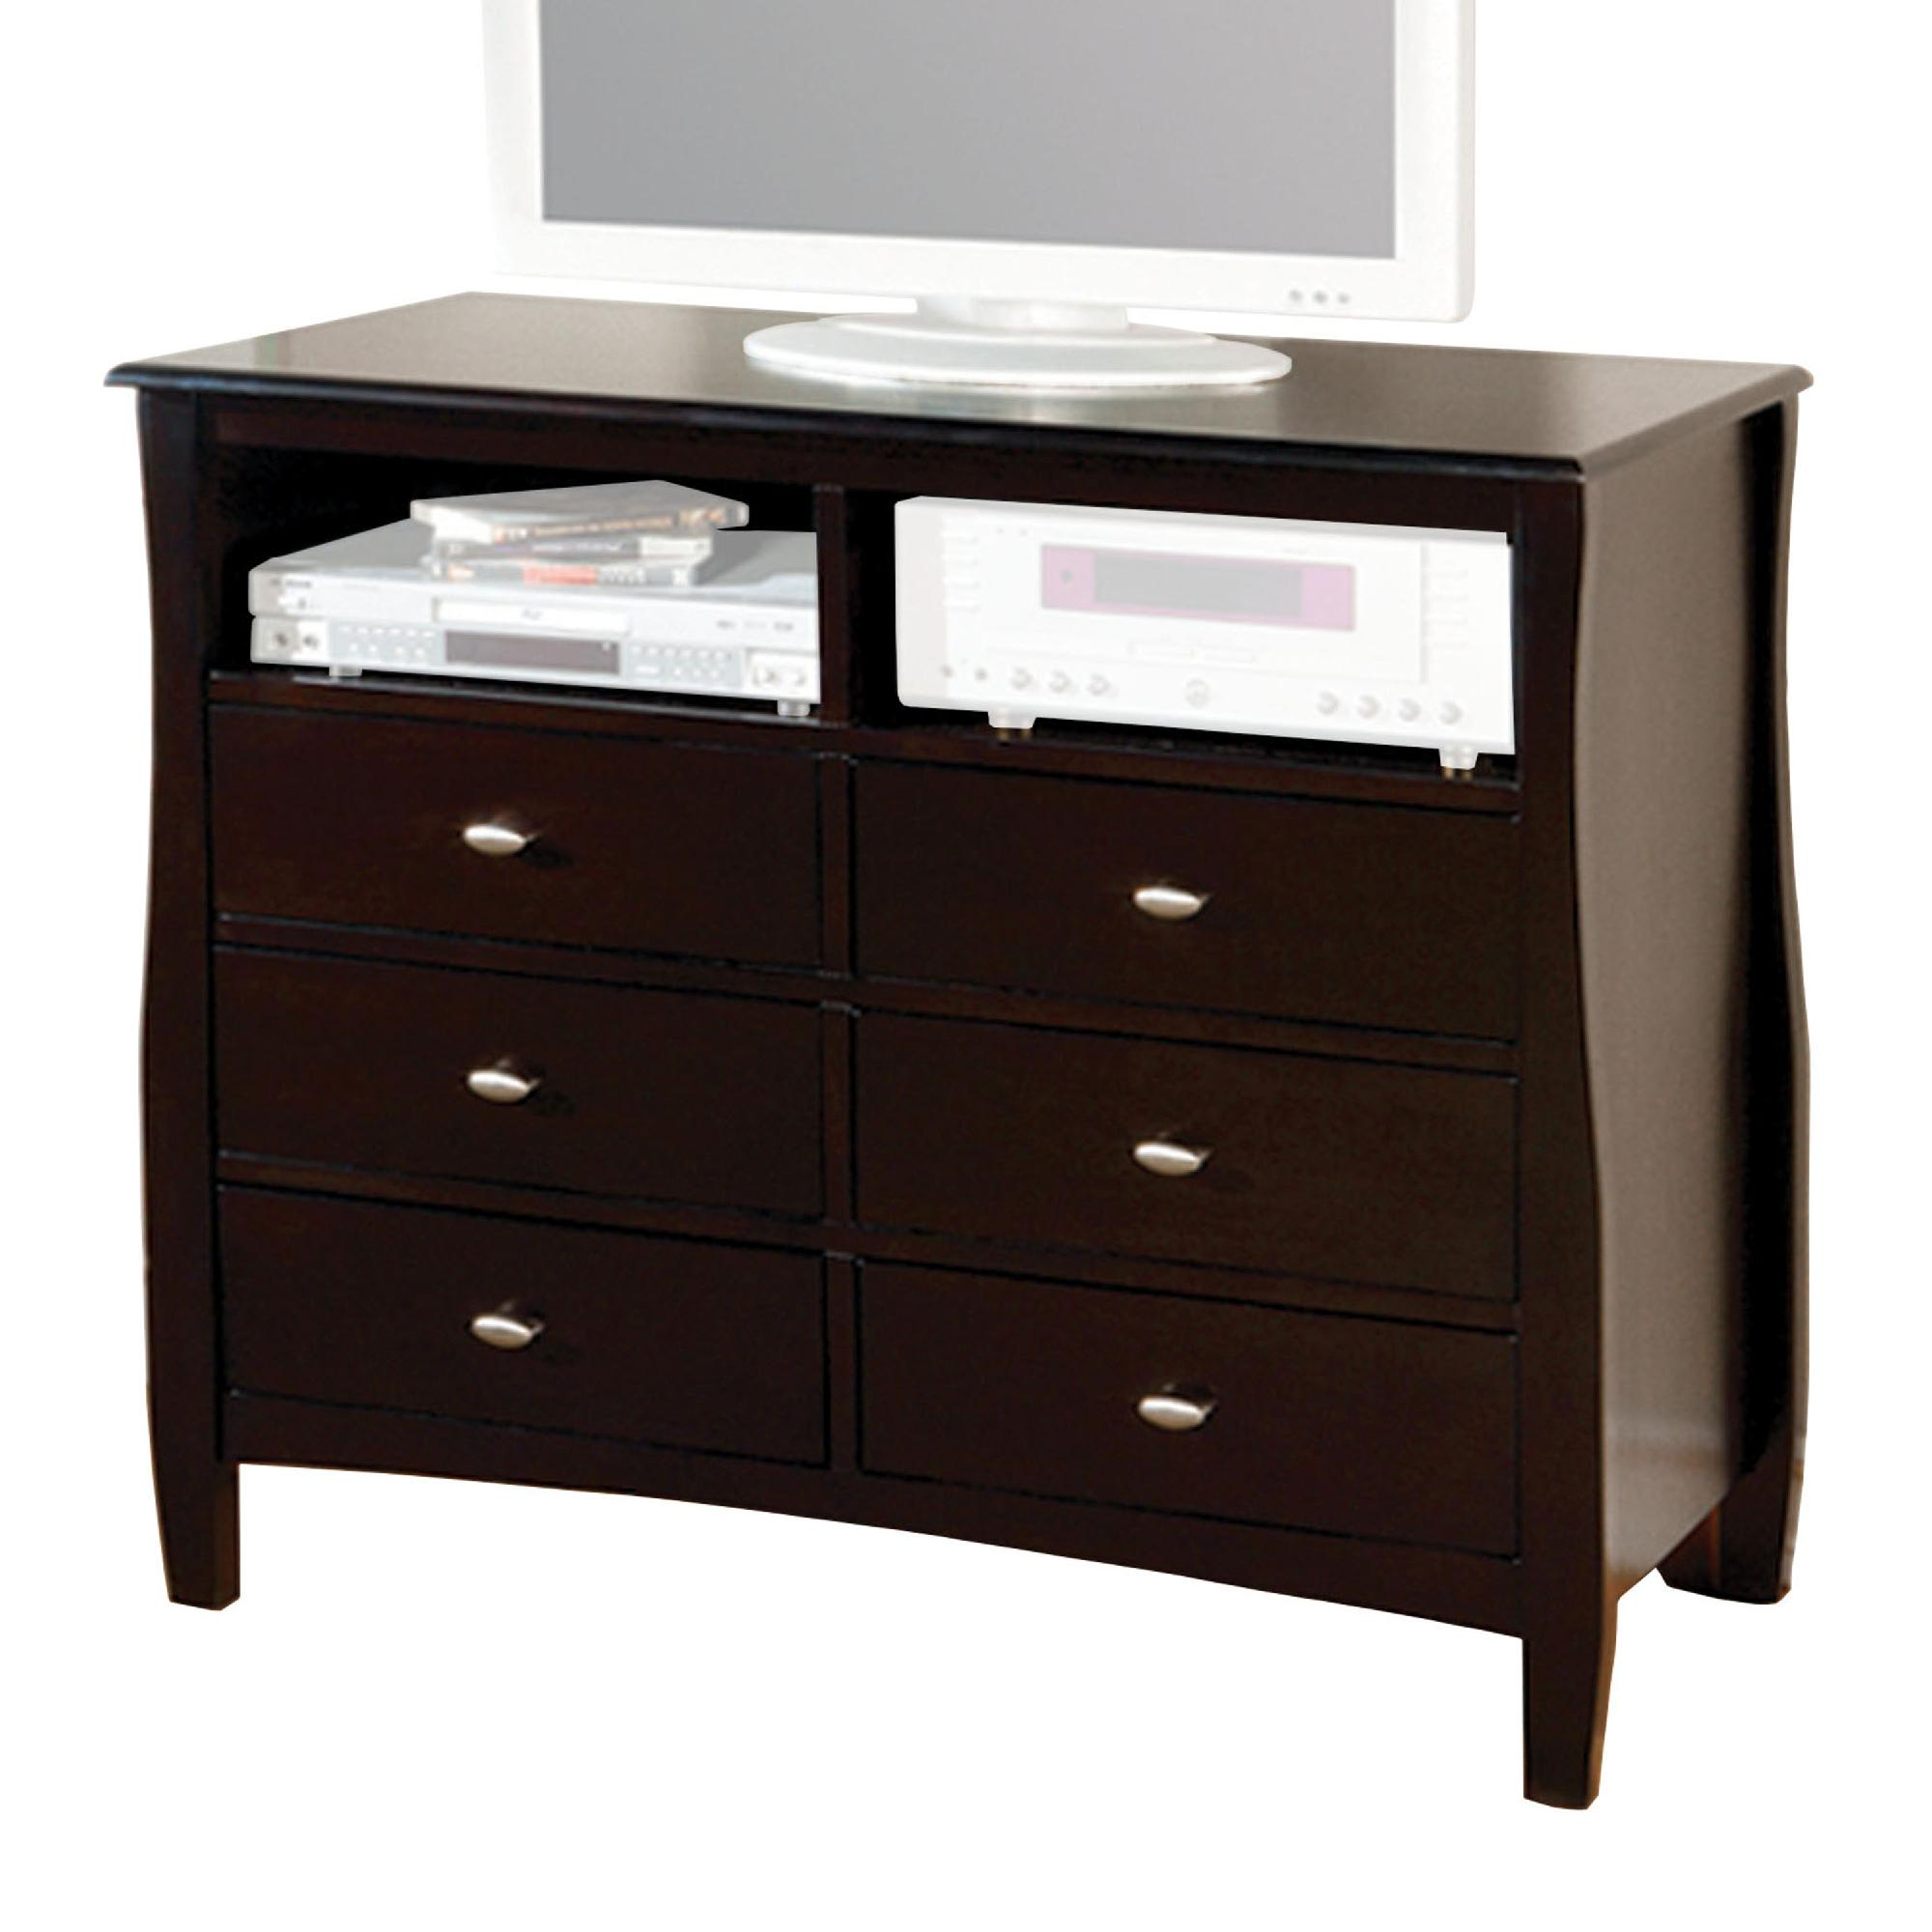 Dressers  Find Stylish Black Mahogany and White Dressers at Sears